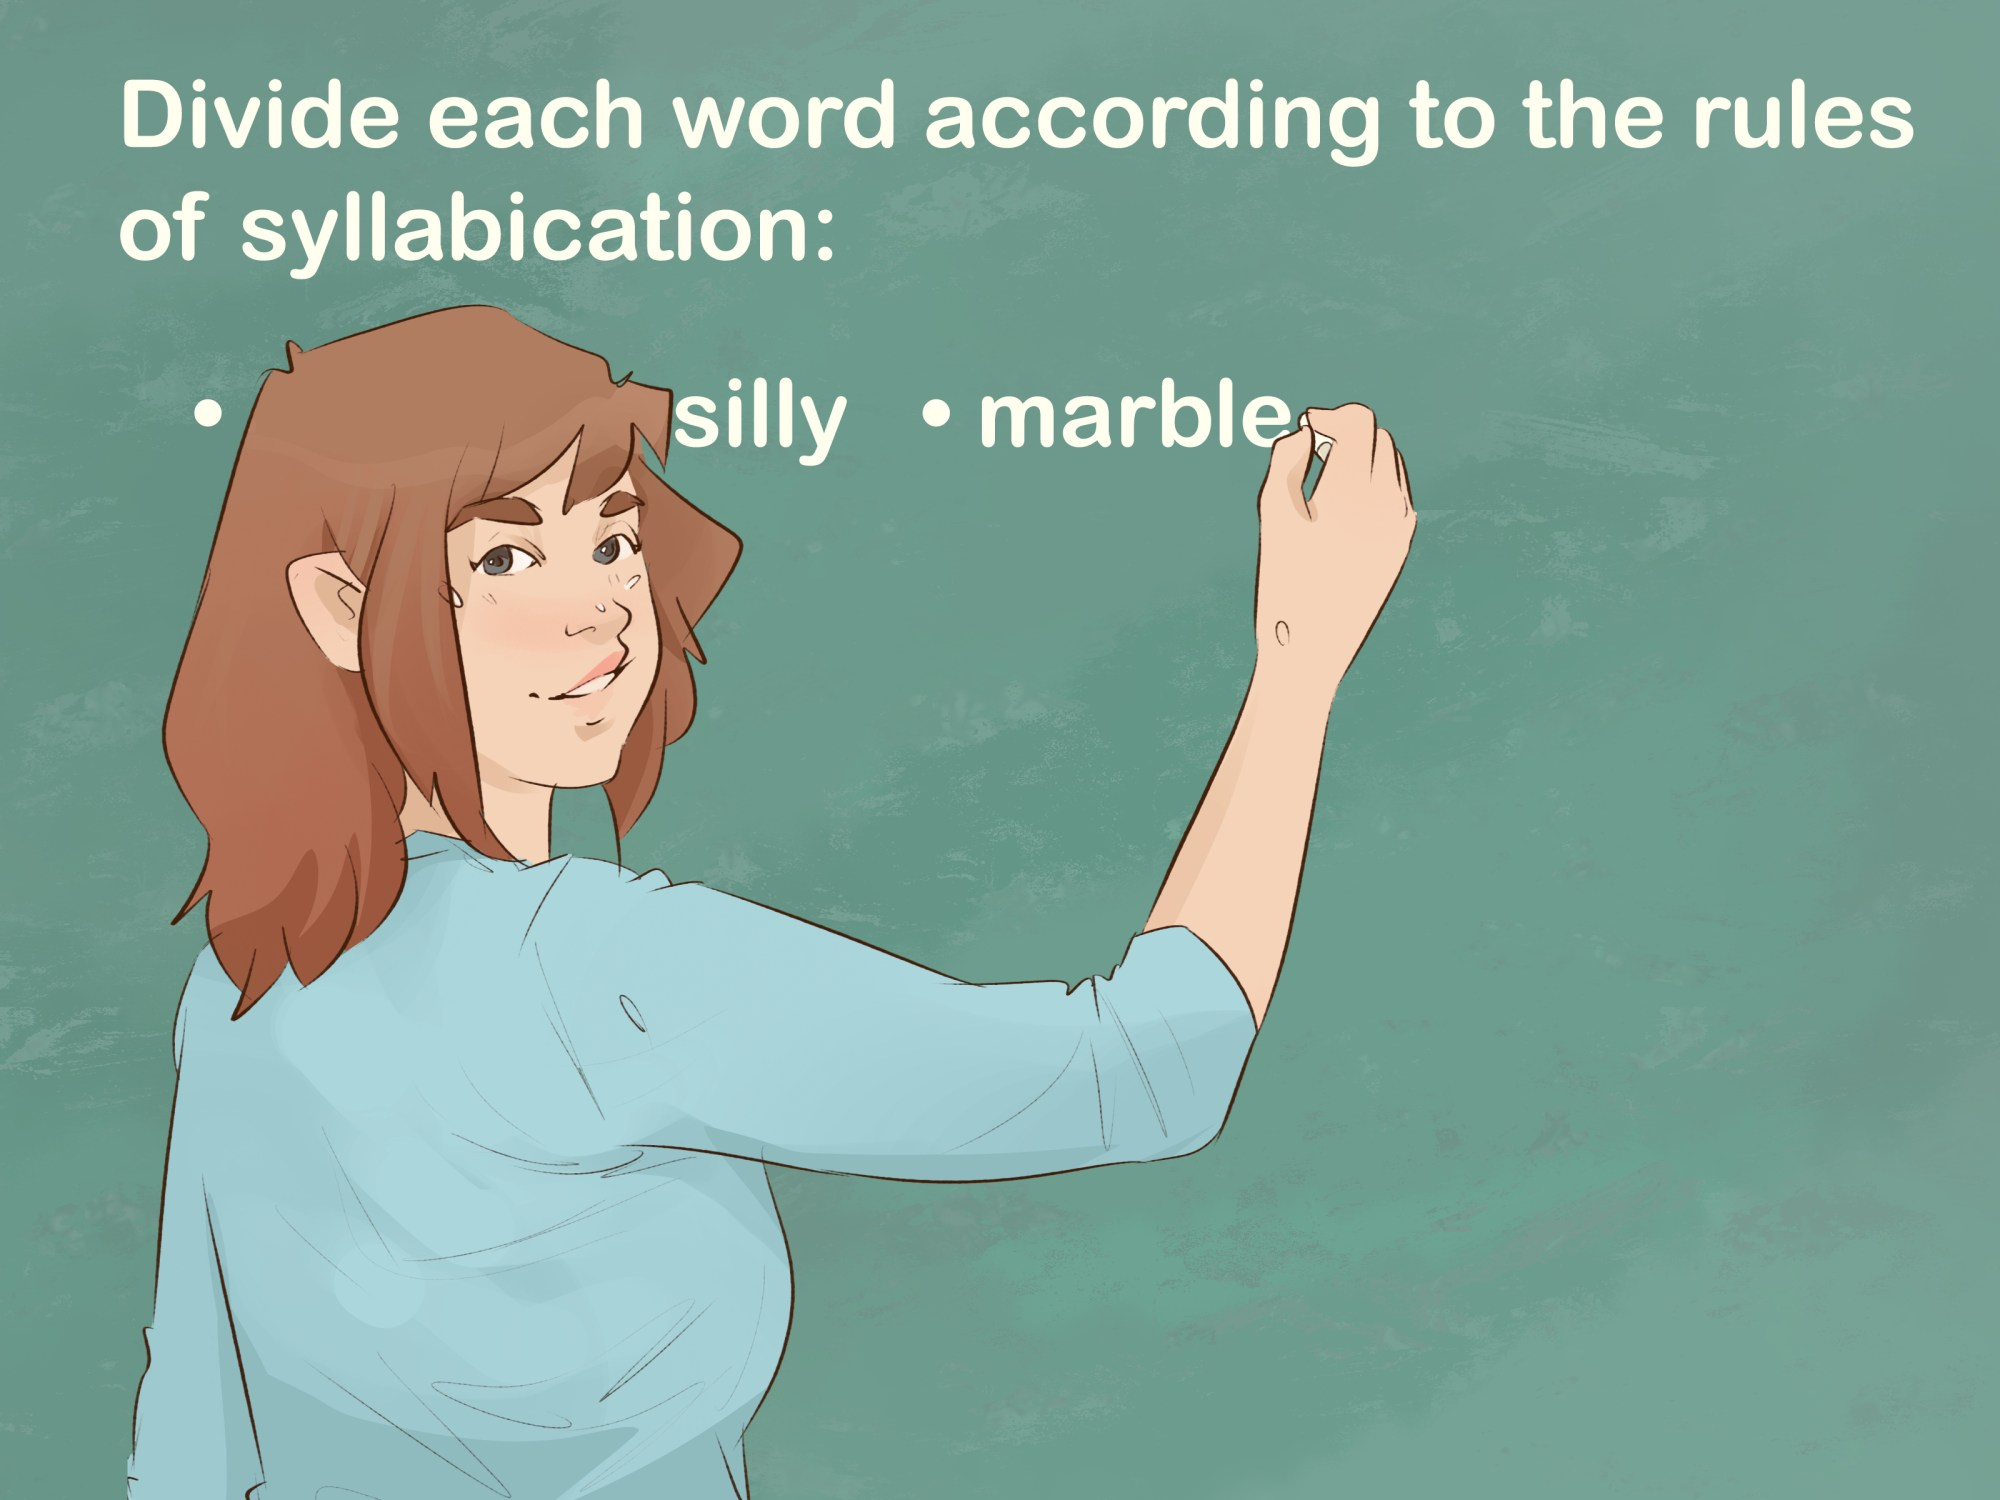 hight resolution of How to Teach and Learn Syllabication (with Pictures) - wikiHow